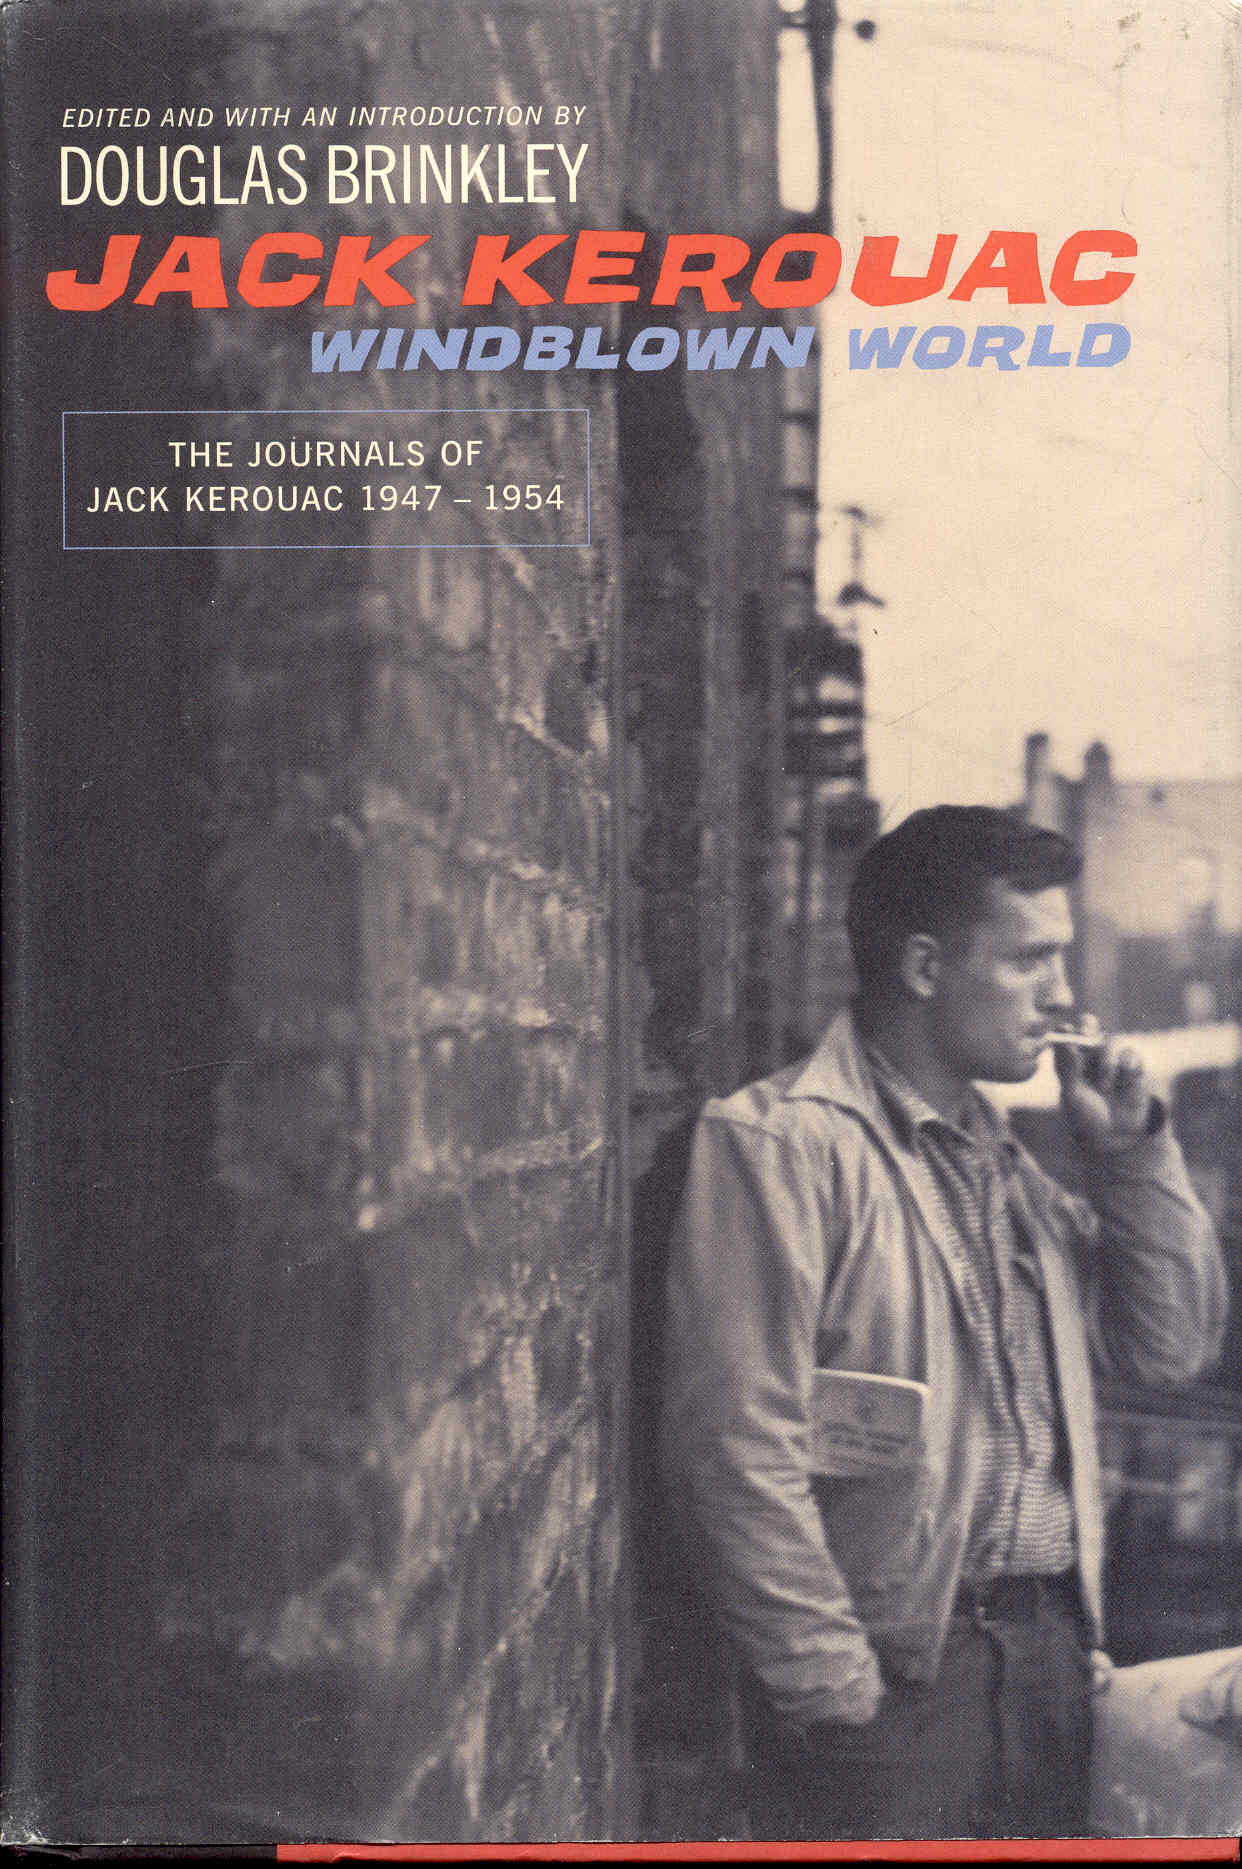 Image for Windblown World: The Journals of Jack Kerouac 1947-1954